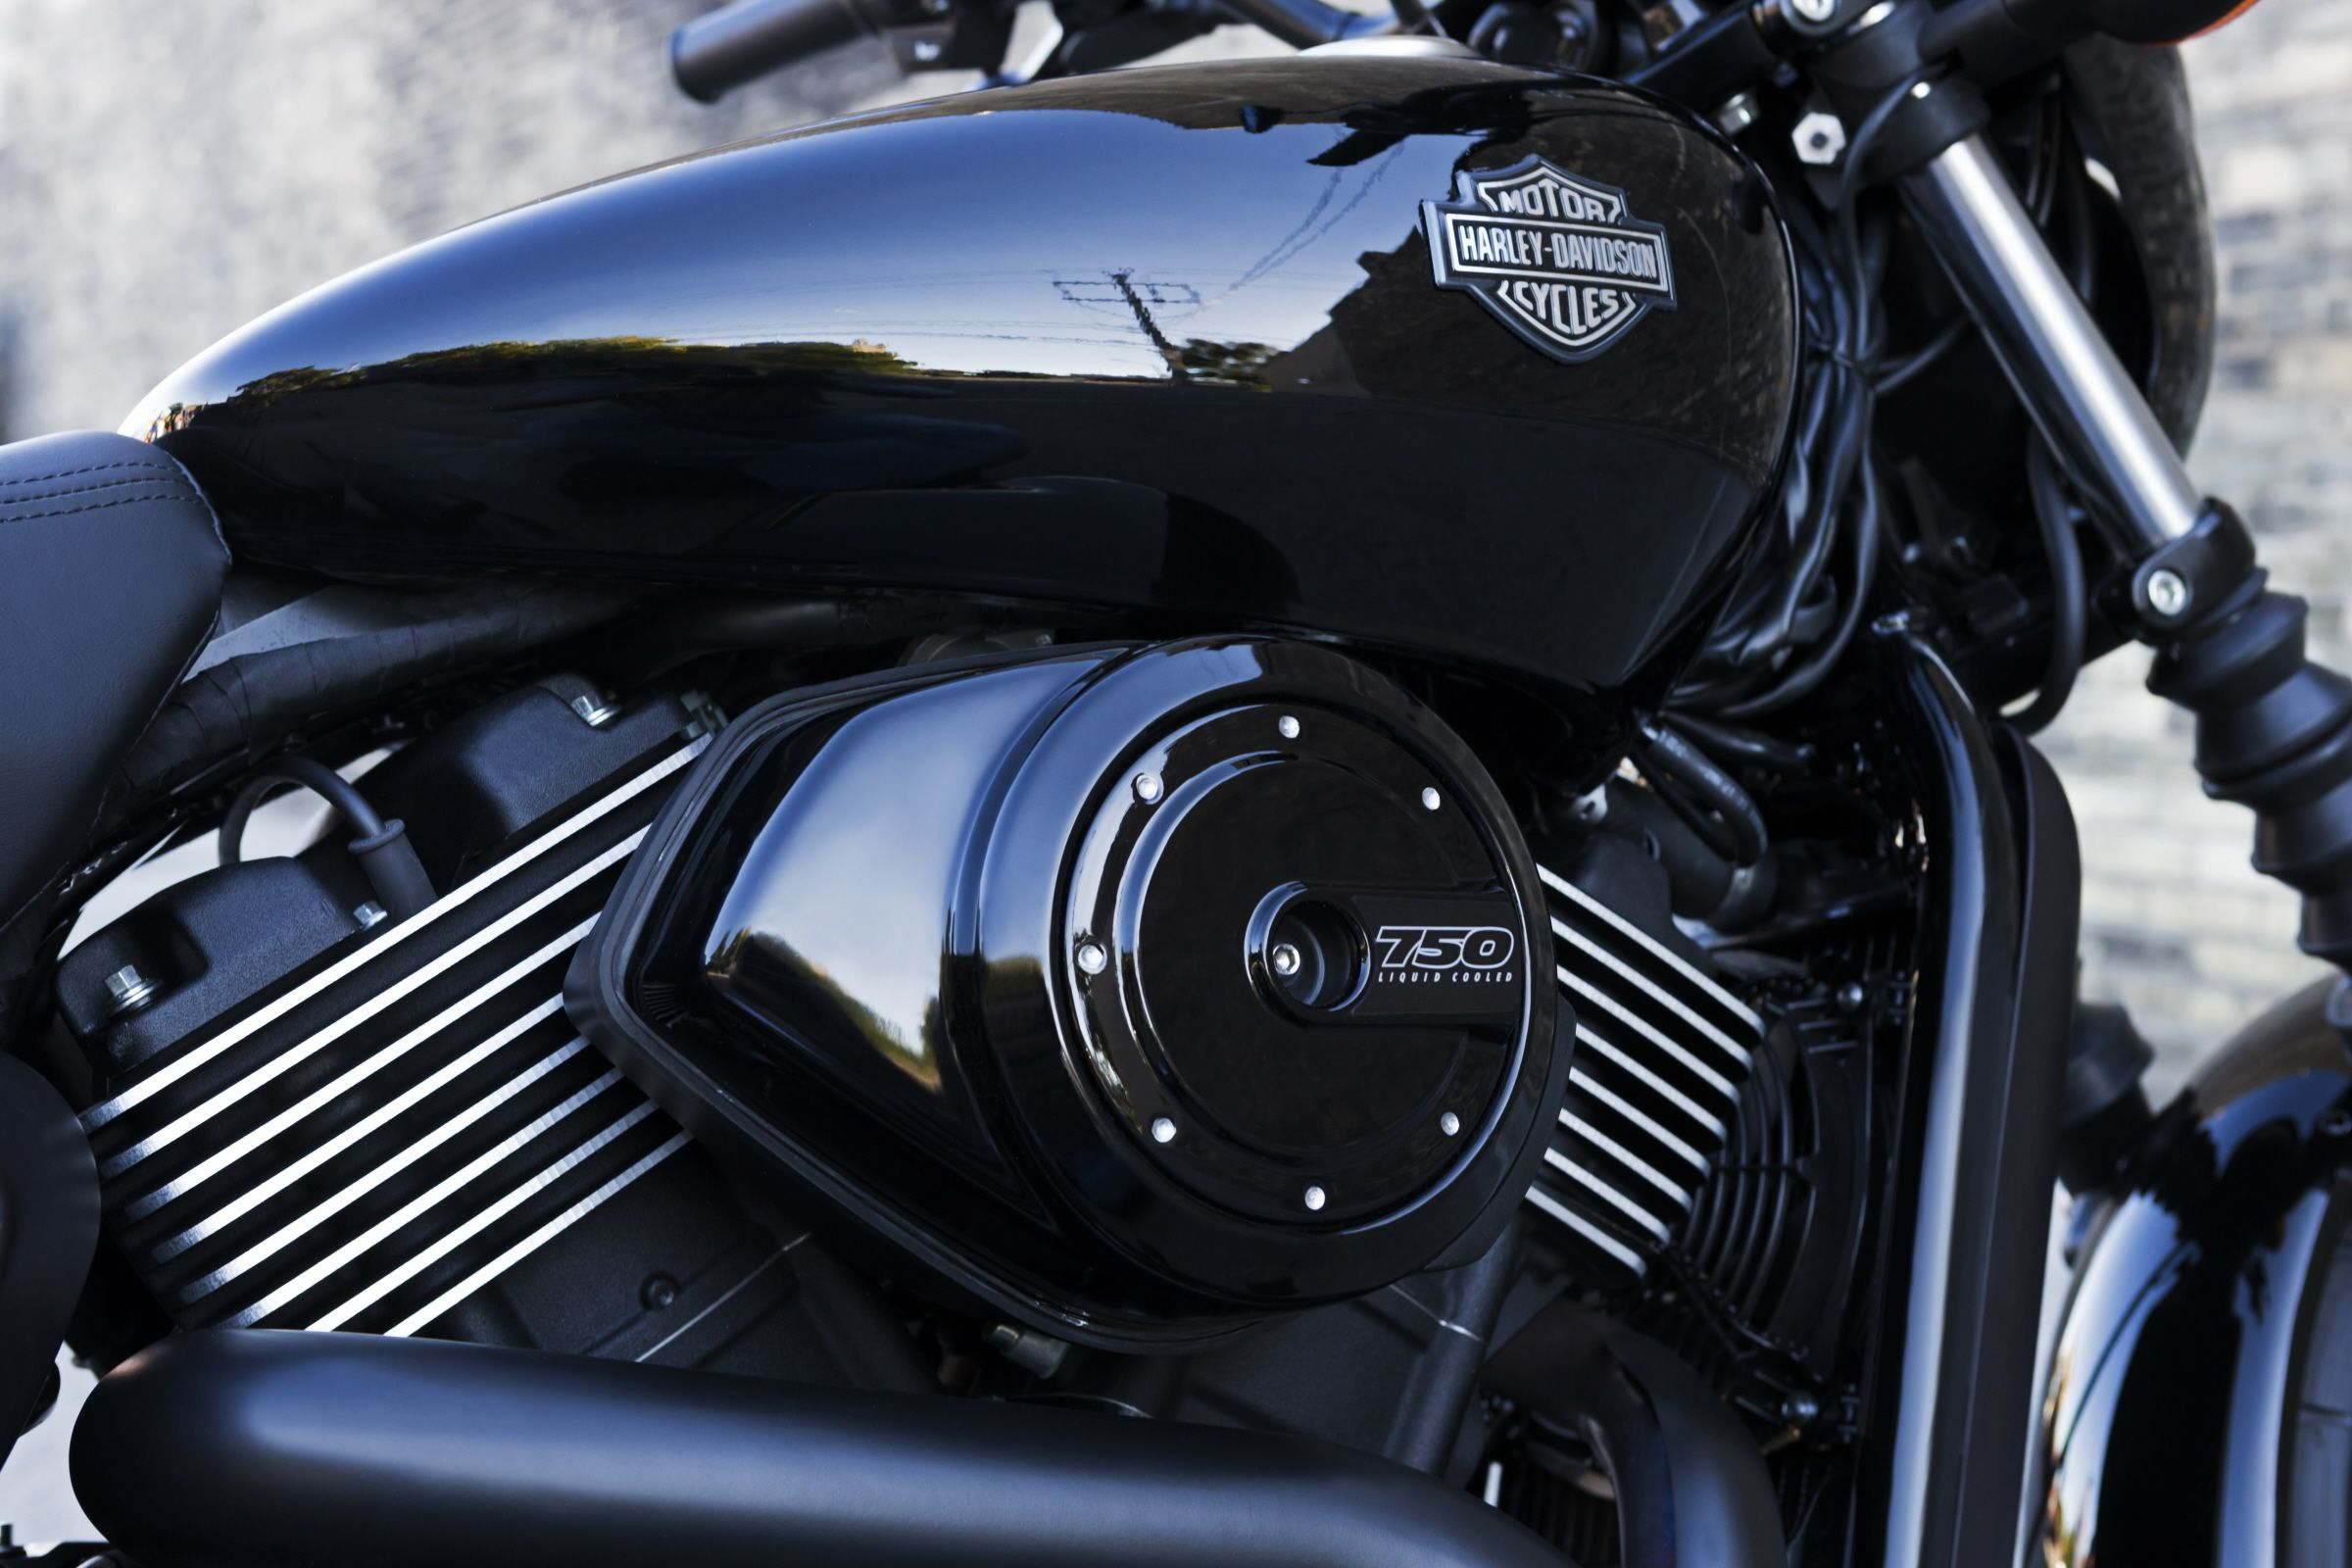 The all new revolution x engine is pure harley davidson v twin muscle